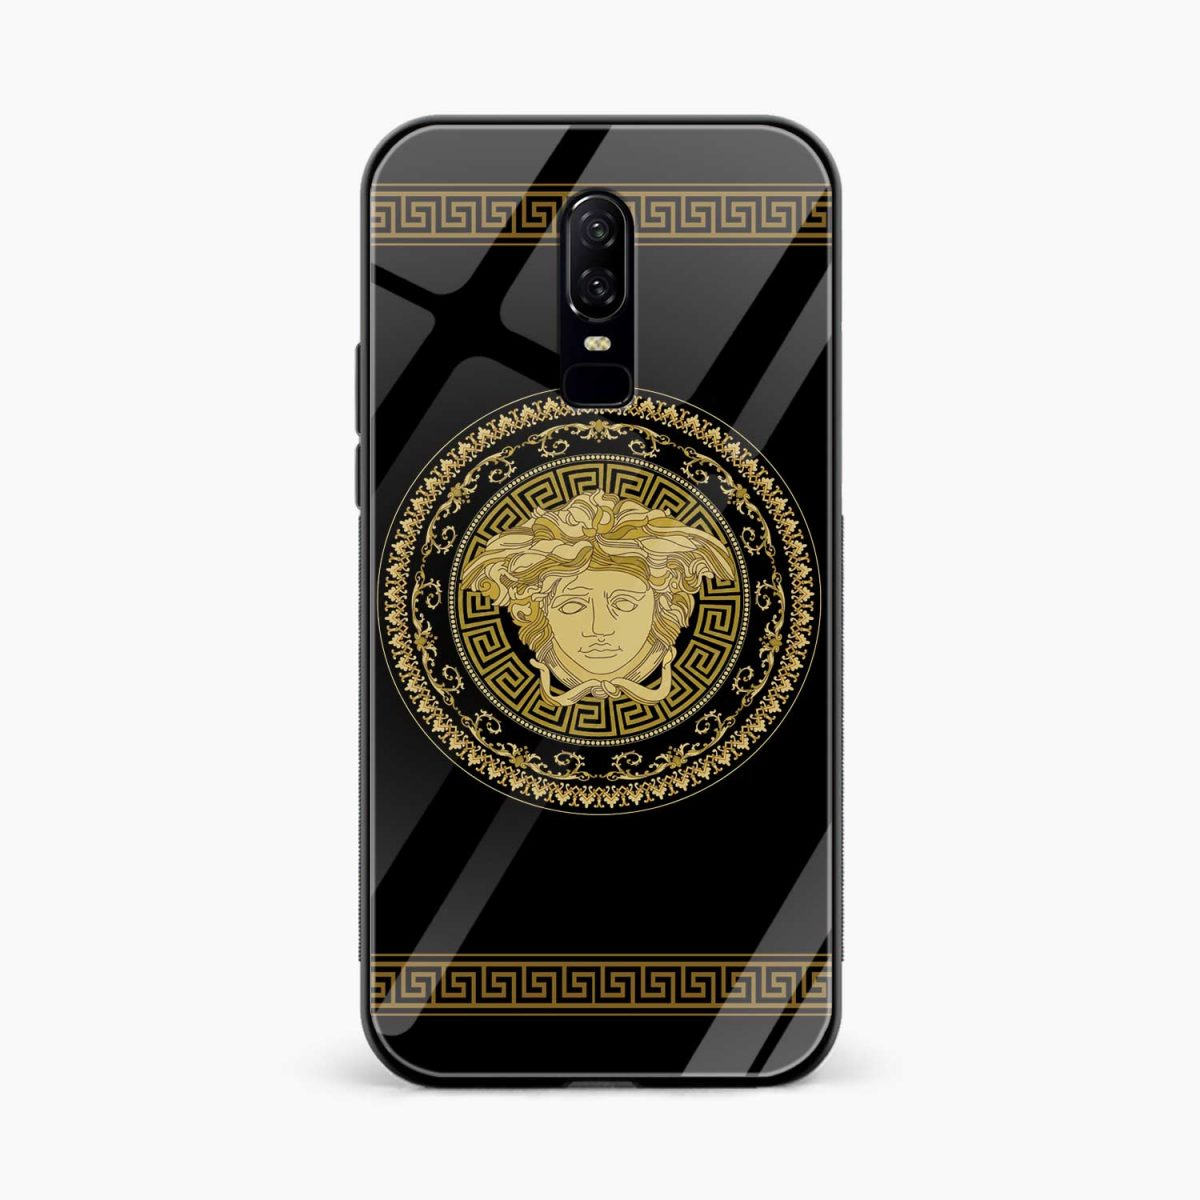 VERSACE front view oneplus 6 back cover